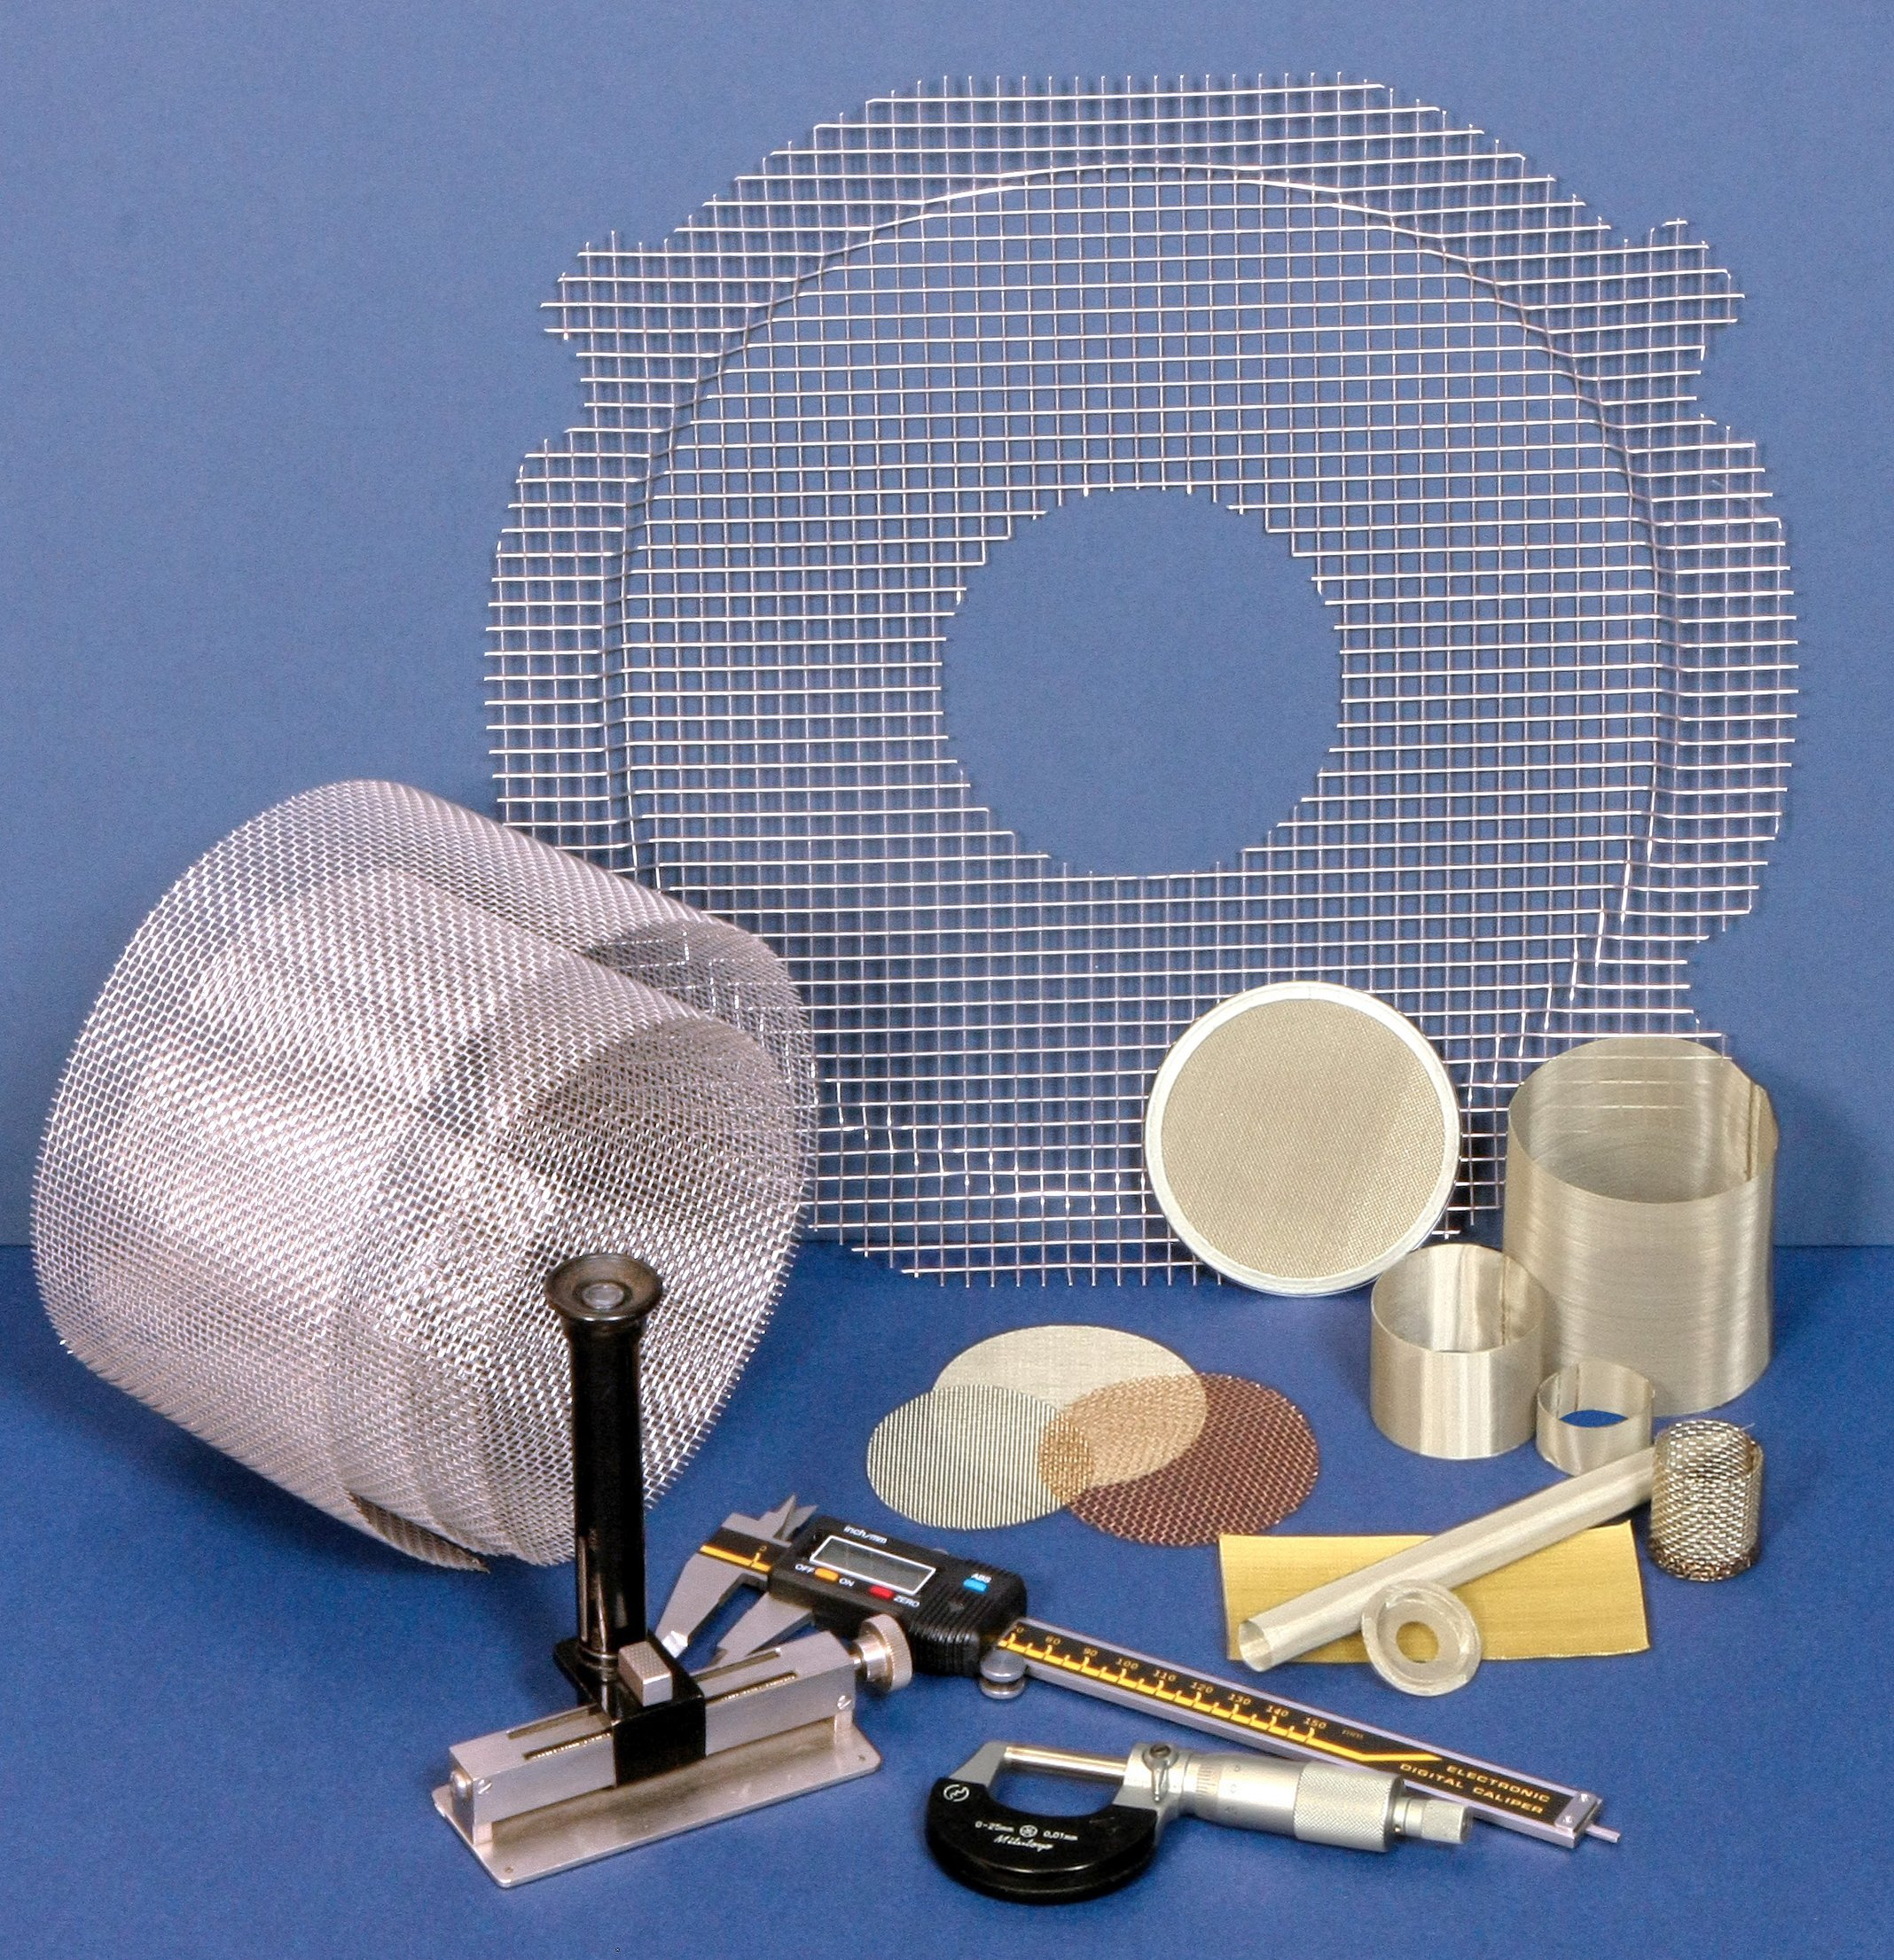 Woven wire mesh filtration products with measuring equipment